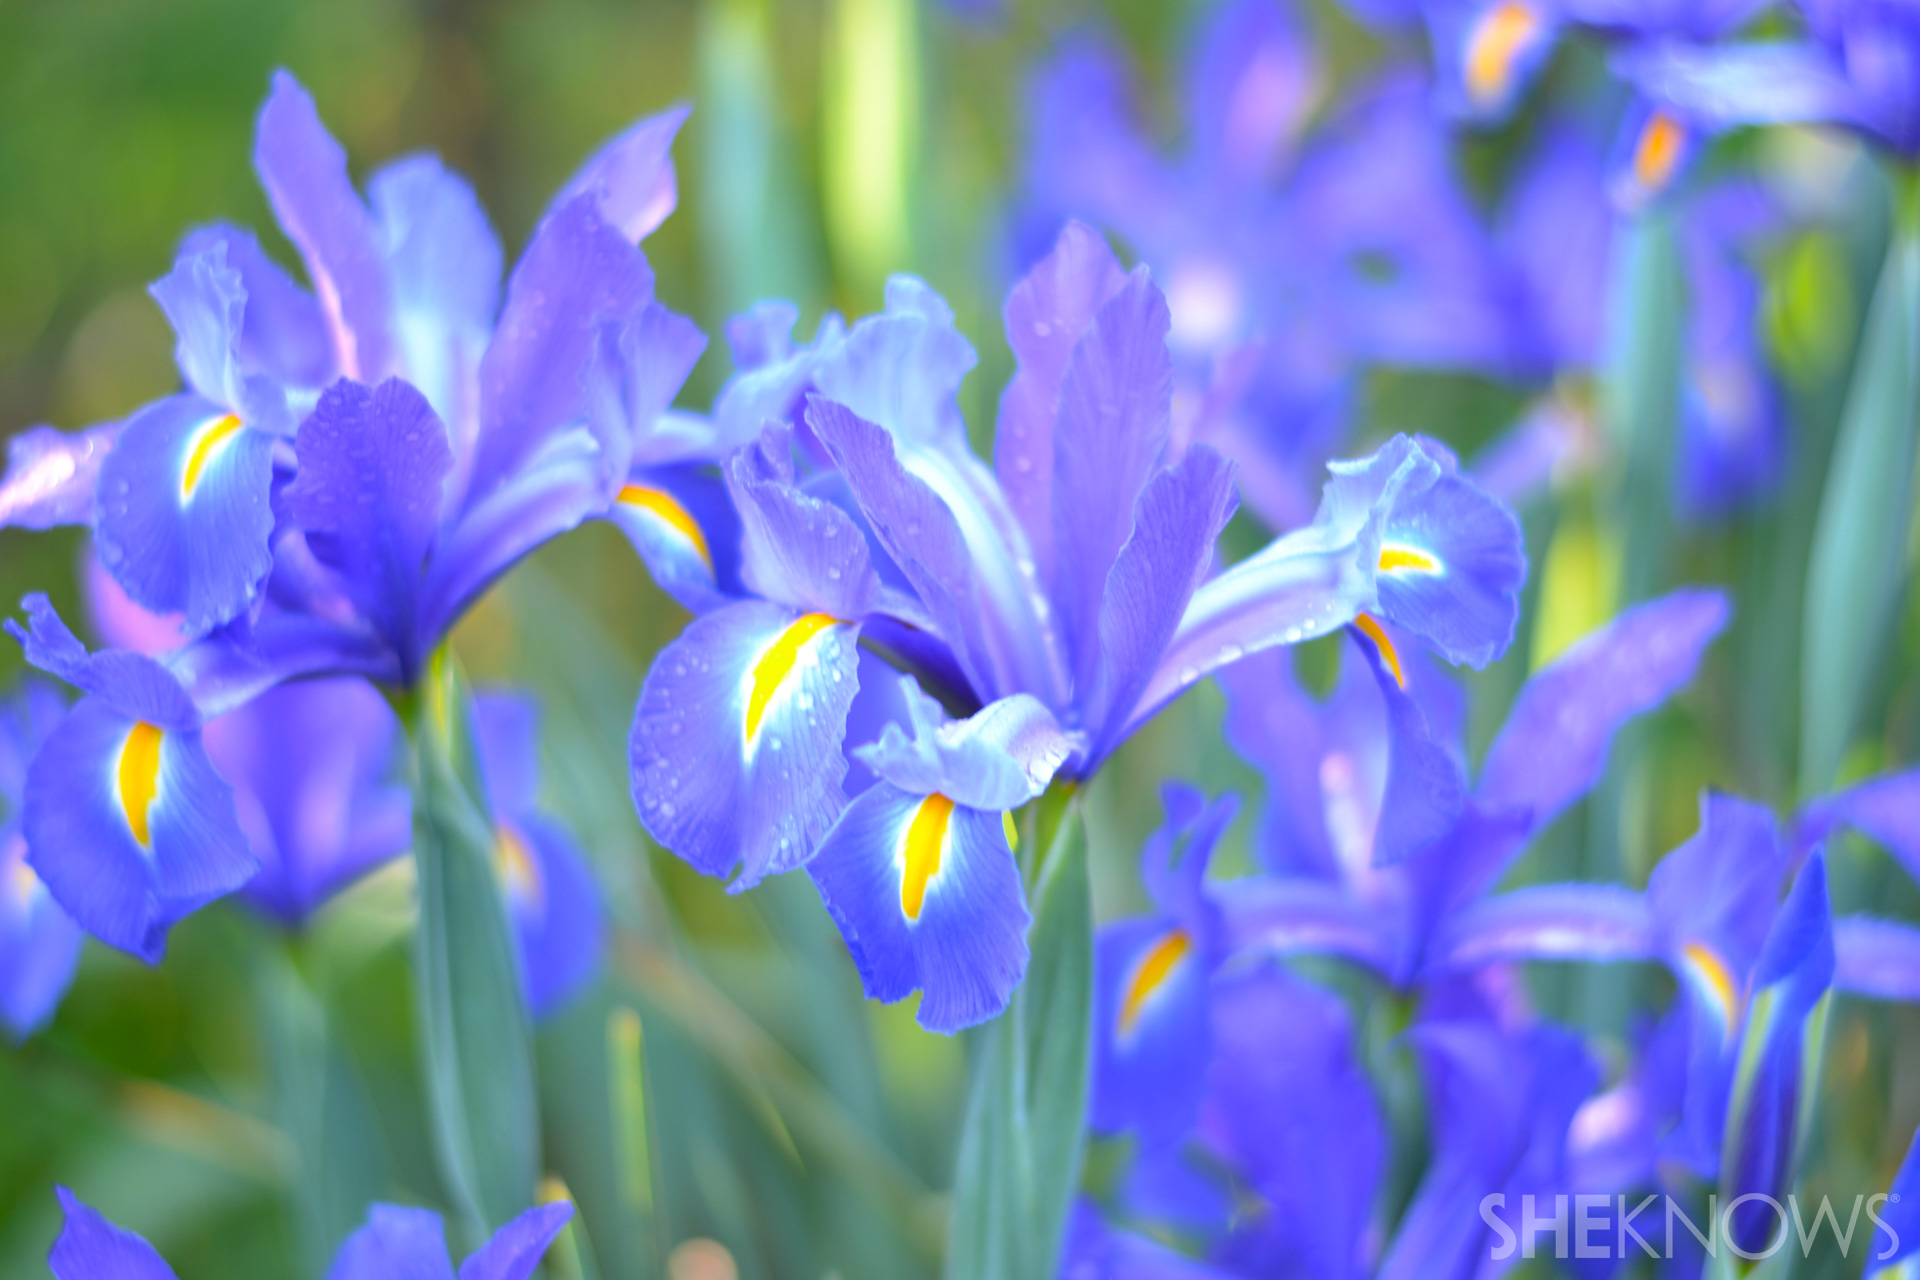 Capture great shots of your garden with these helpful photography tips